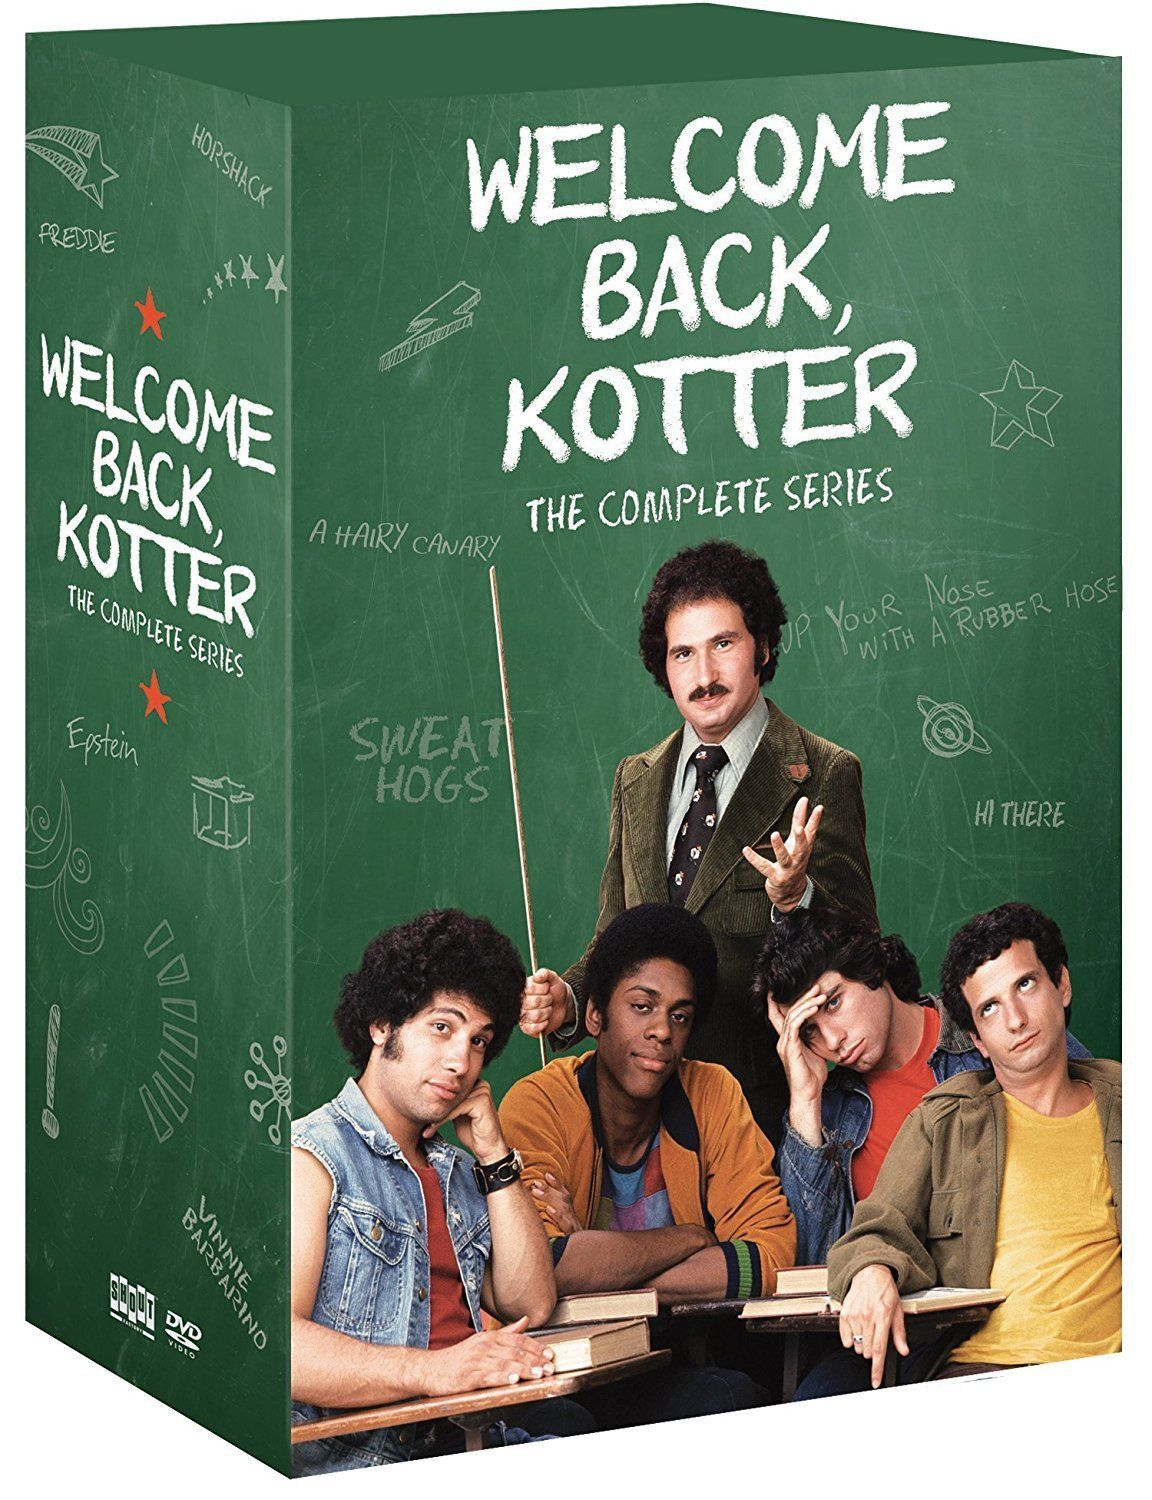 Welcome Back Kotter - The Complete Series (DVD Set) New Classic TV Comedy